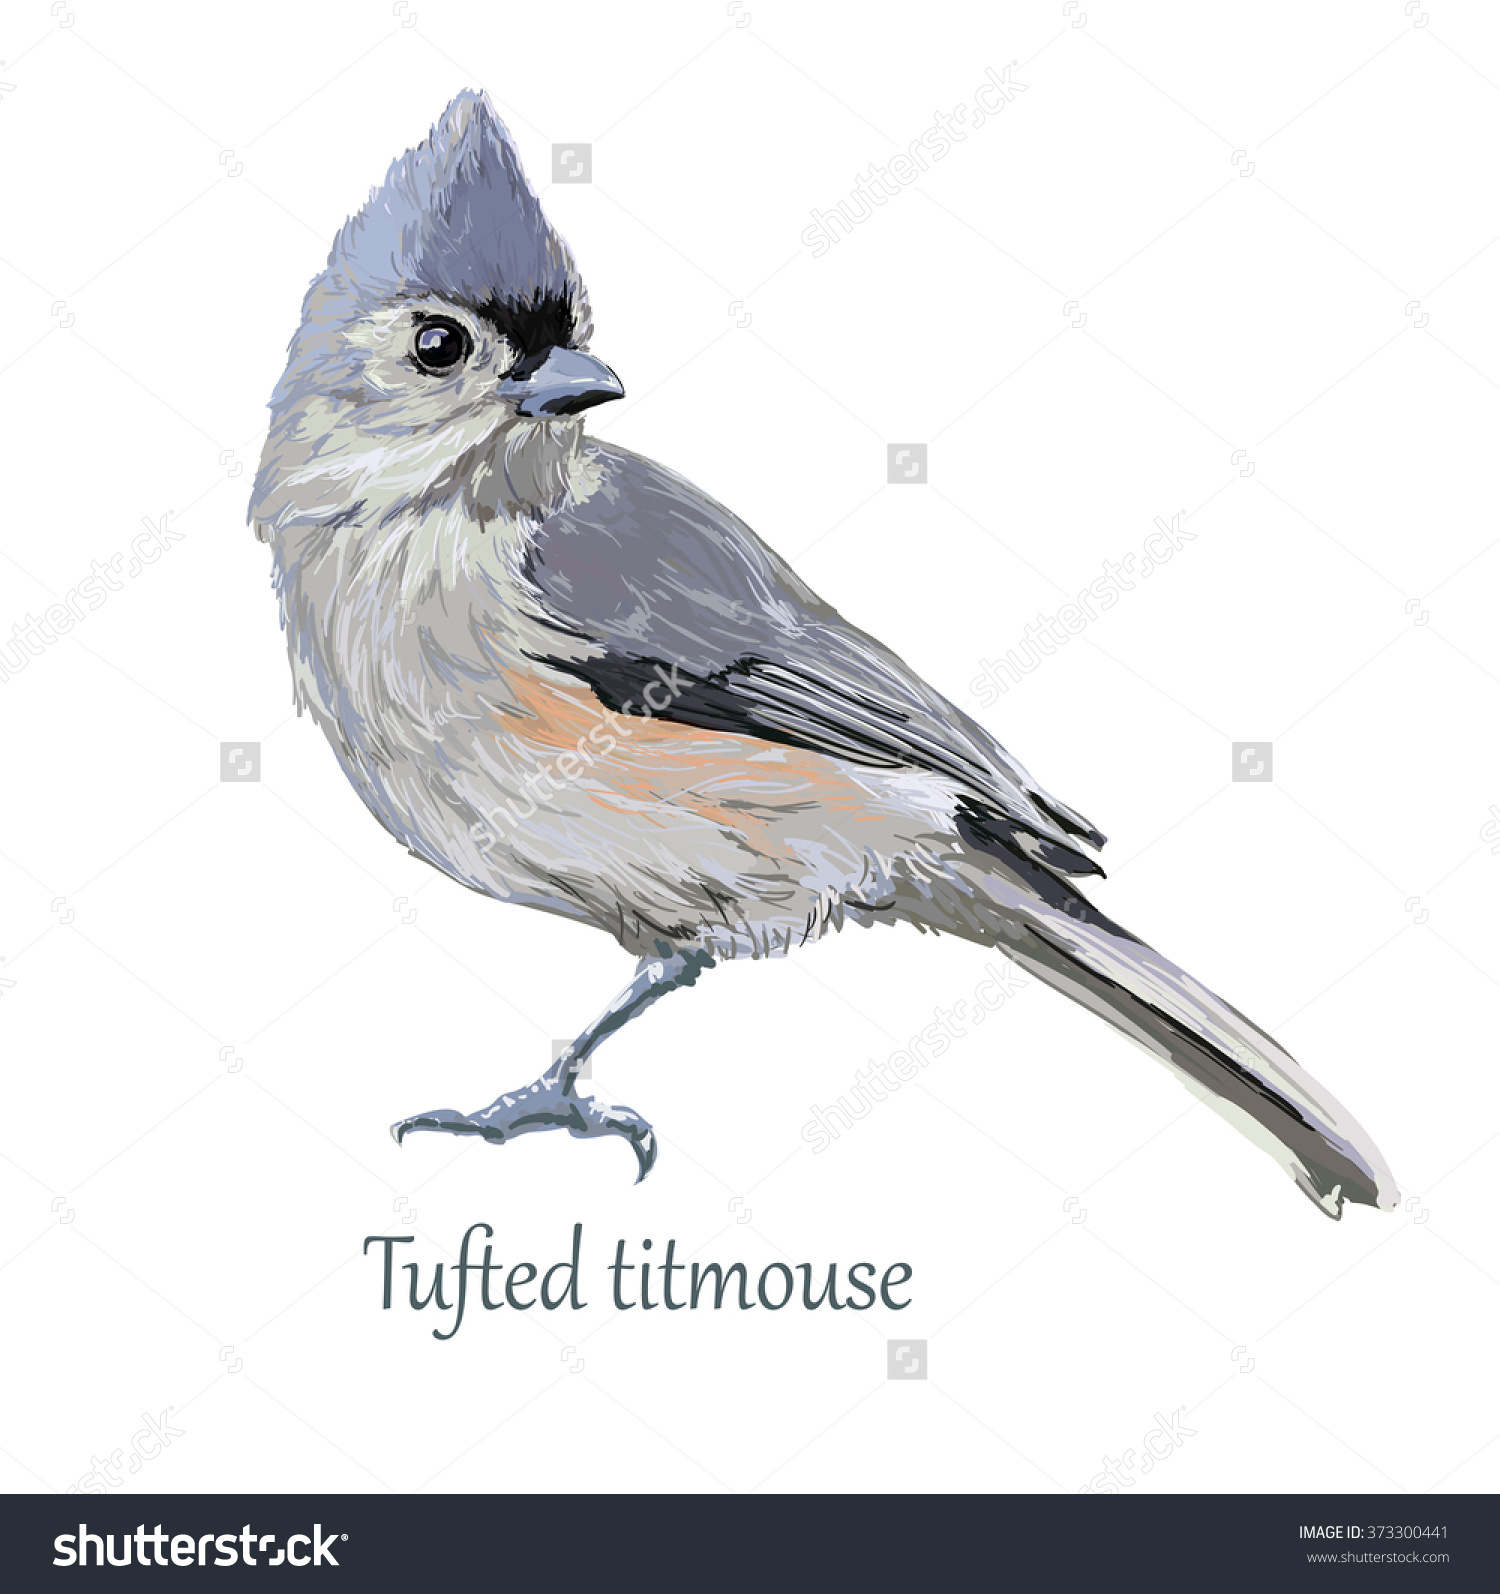 Tufted Titmouse clipart #1, Download drawings